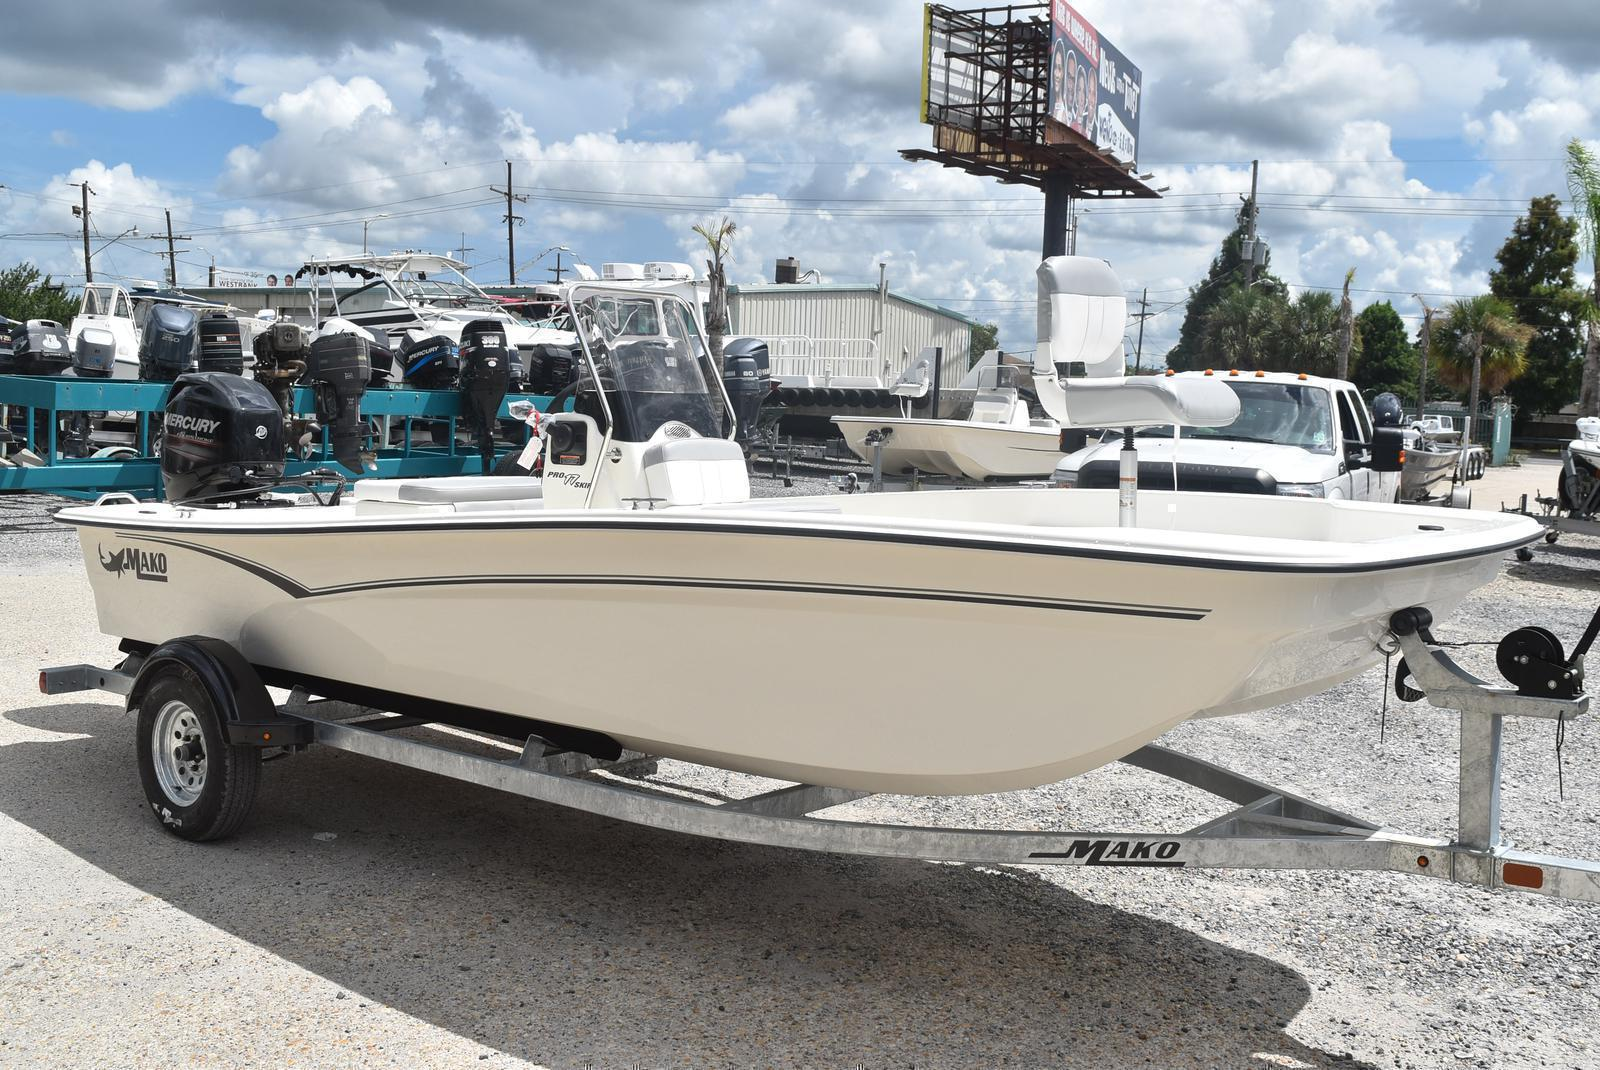 2020 Mako boat for sale, model of the boat is Pro Skiff 17, 75 ELPT & Image # 672 of 702